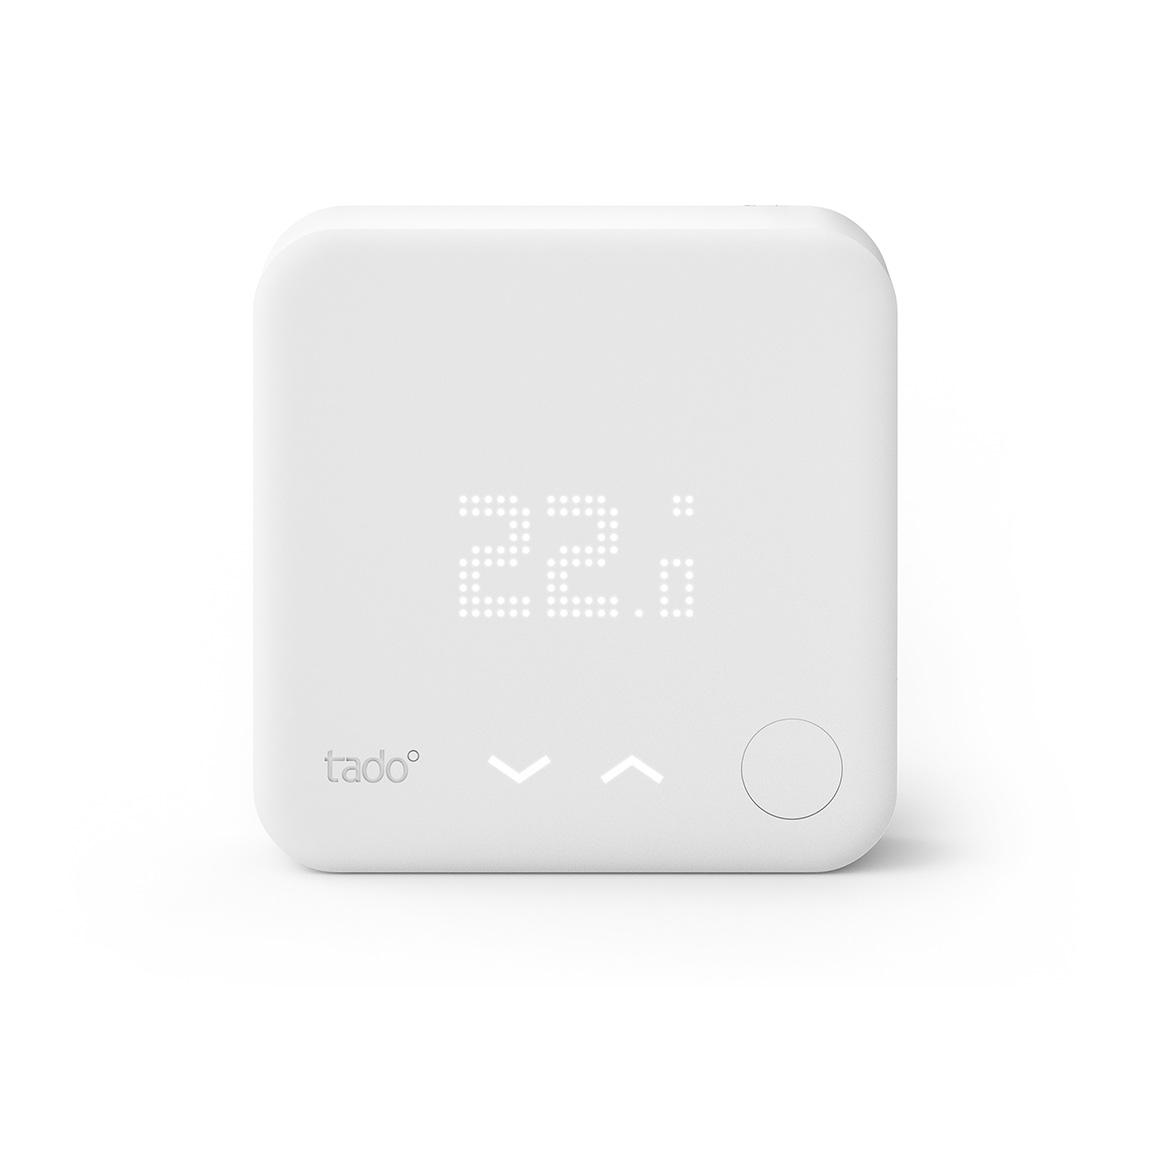 tado° Wireless Smart Thermostat